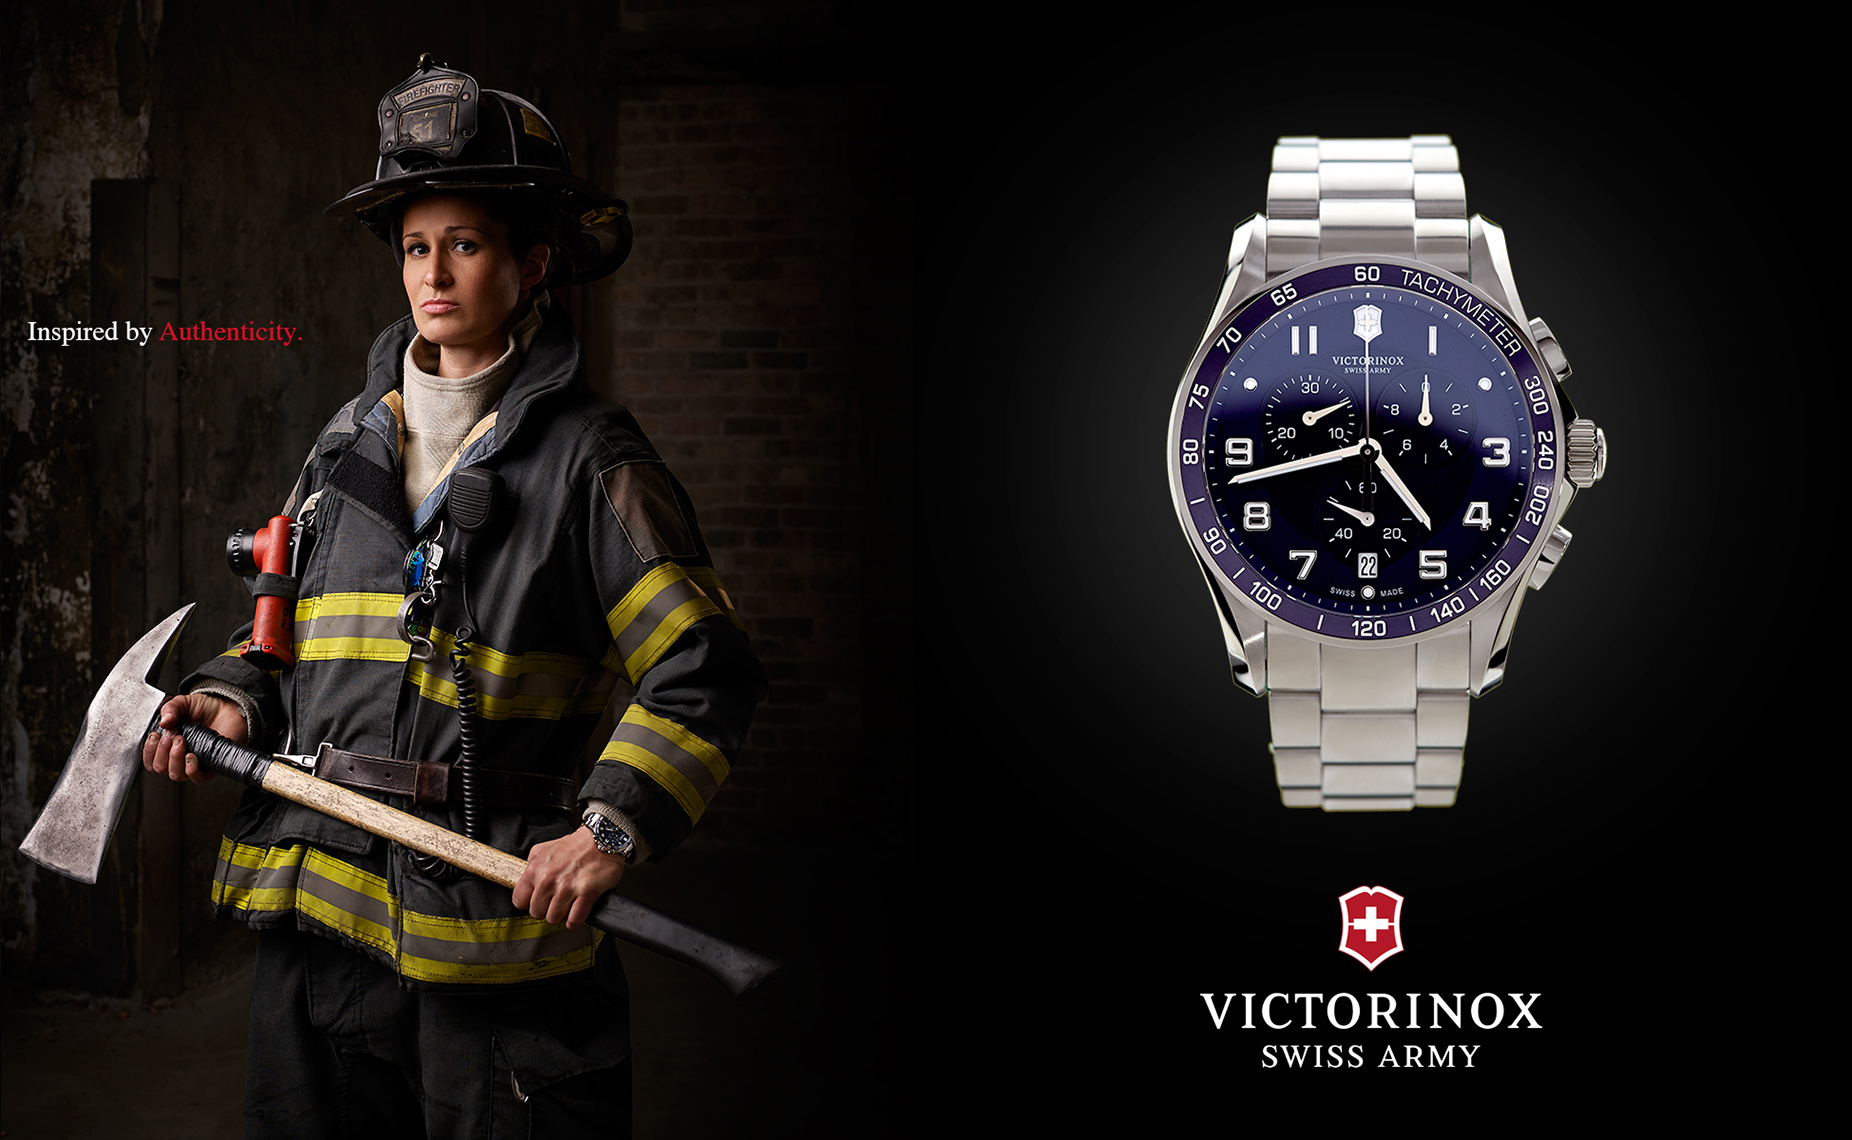 Firefighter_138-js-working-ad